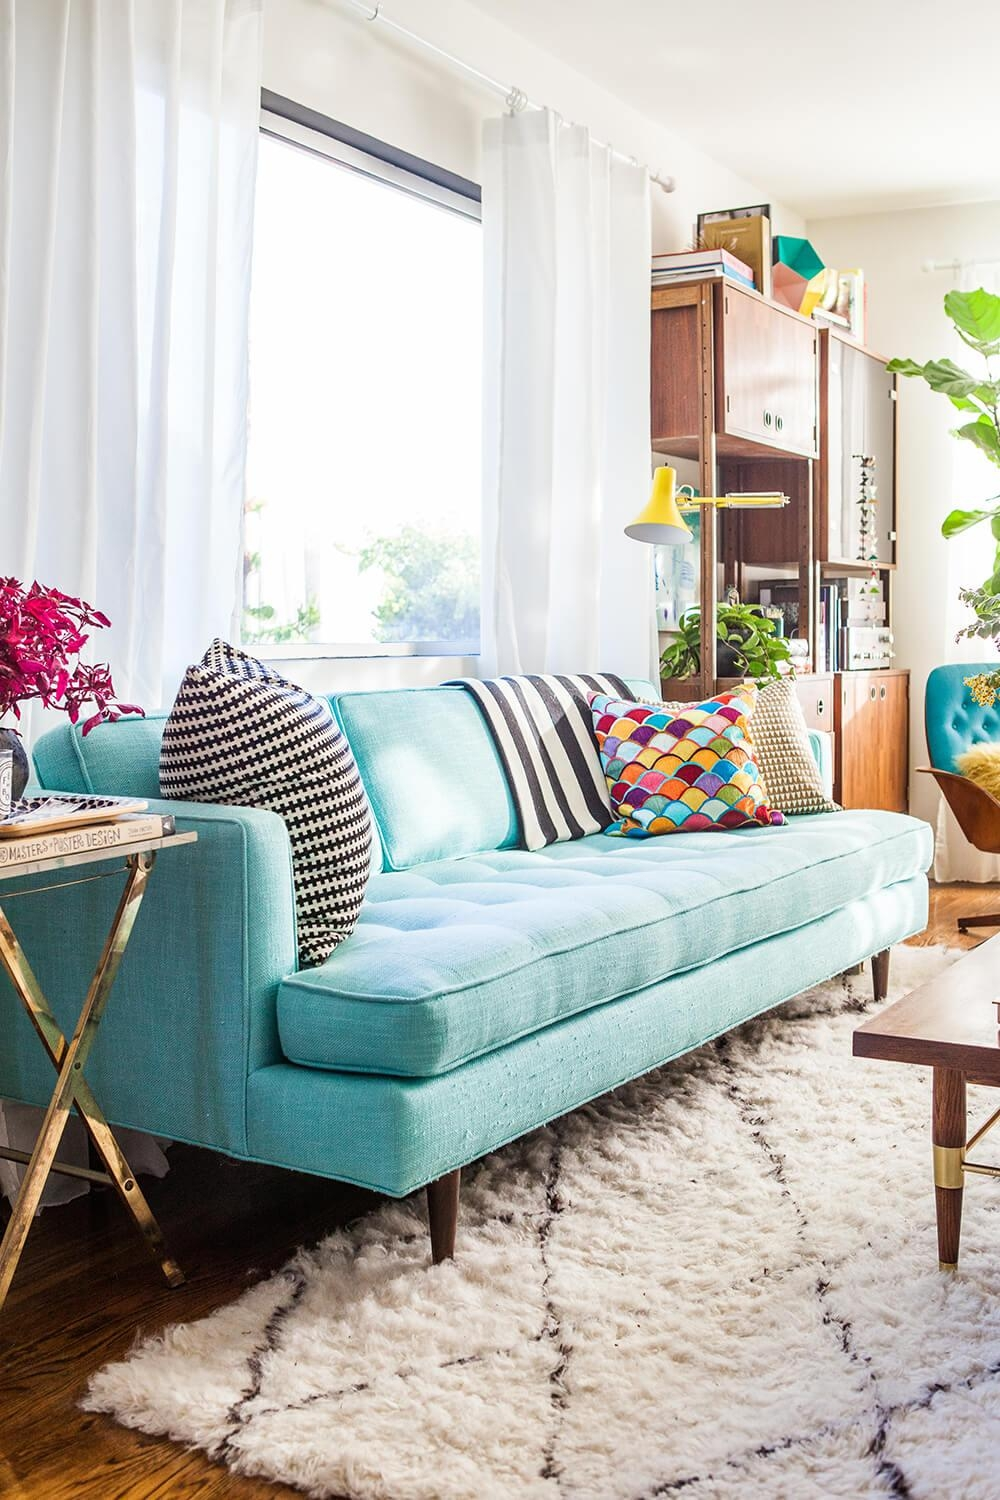 84 Affordable Amazing Sofas Under $1000 – Emily Henderson Intended For Affordable Tufted Sofa (Image 1 of 20)